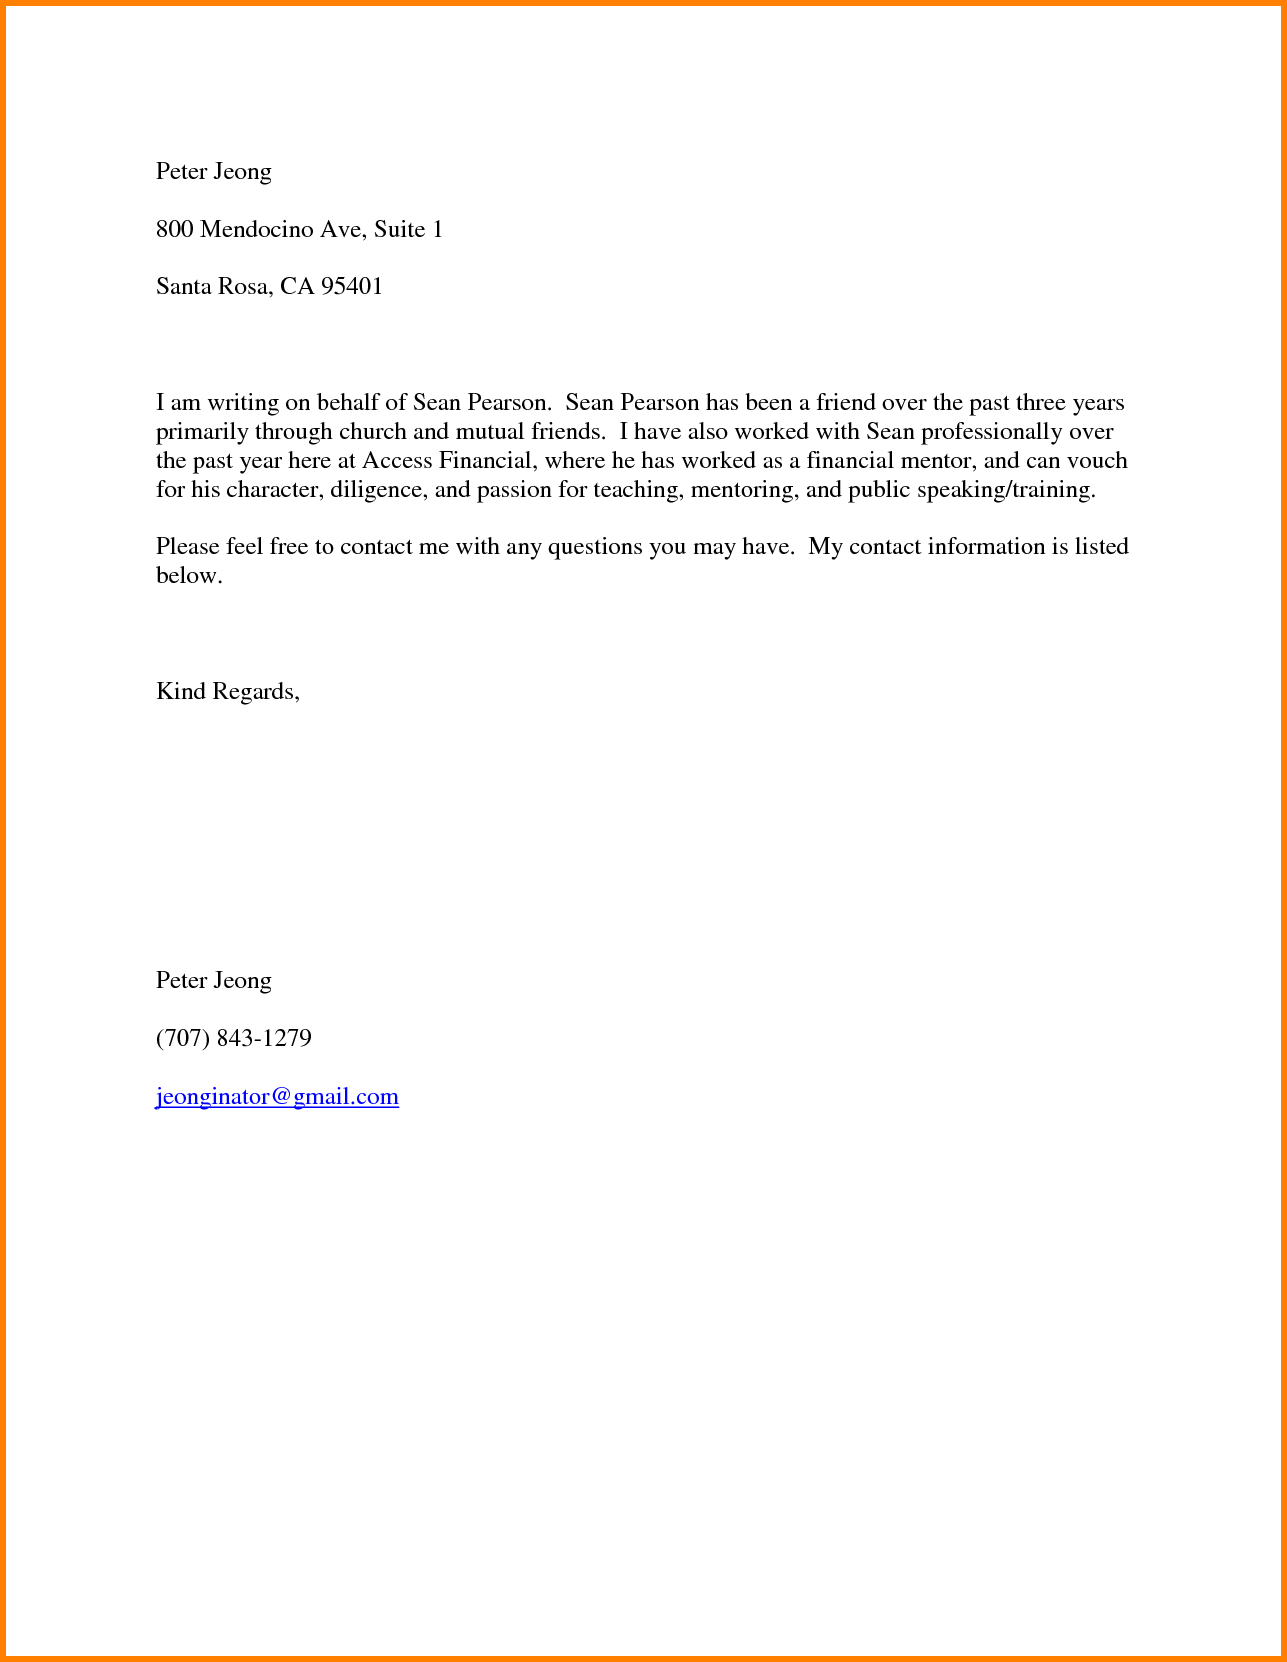 Personal Recommendation Letter Or Character Reference Can Be For Child Care  Position · Friend De Letter Of Recommendation For  Character Letter Of Recommendation